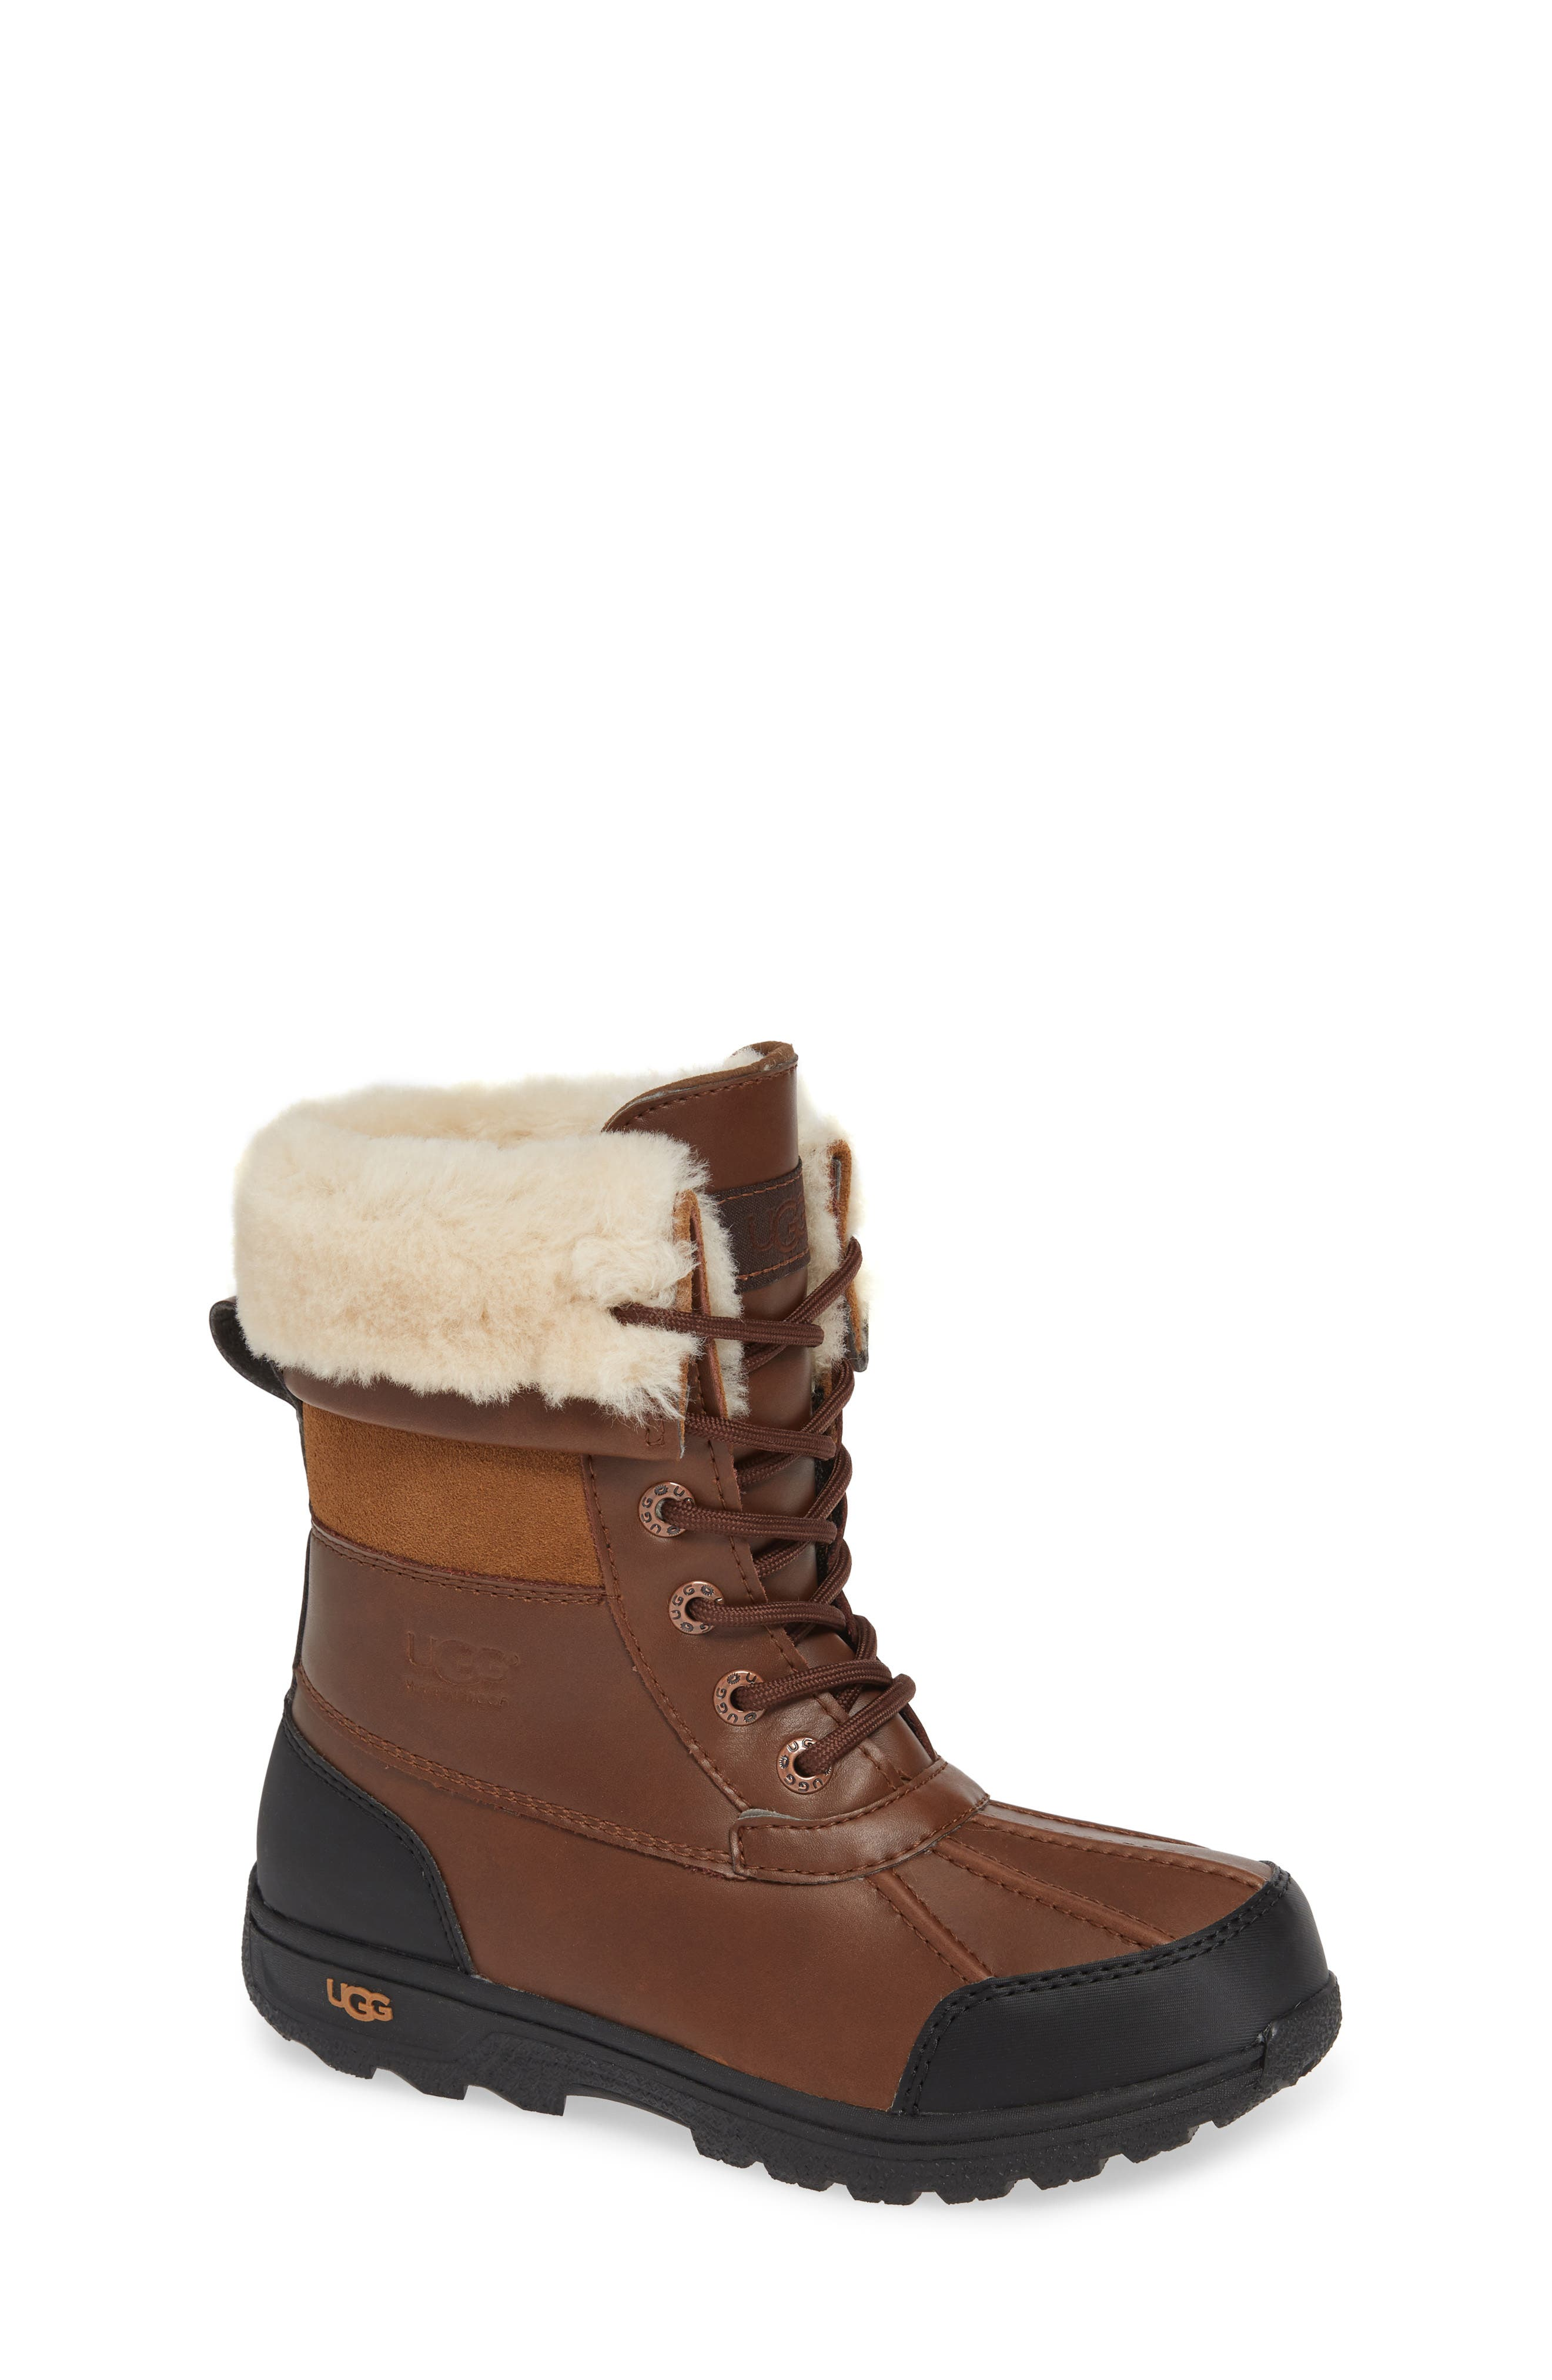 Butte II Waterproof Winter Boot,                             Main thumbnail 1, color,                             WORCHESTER